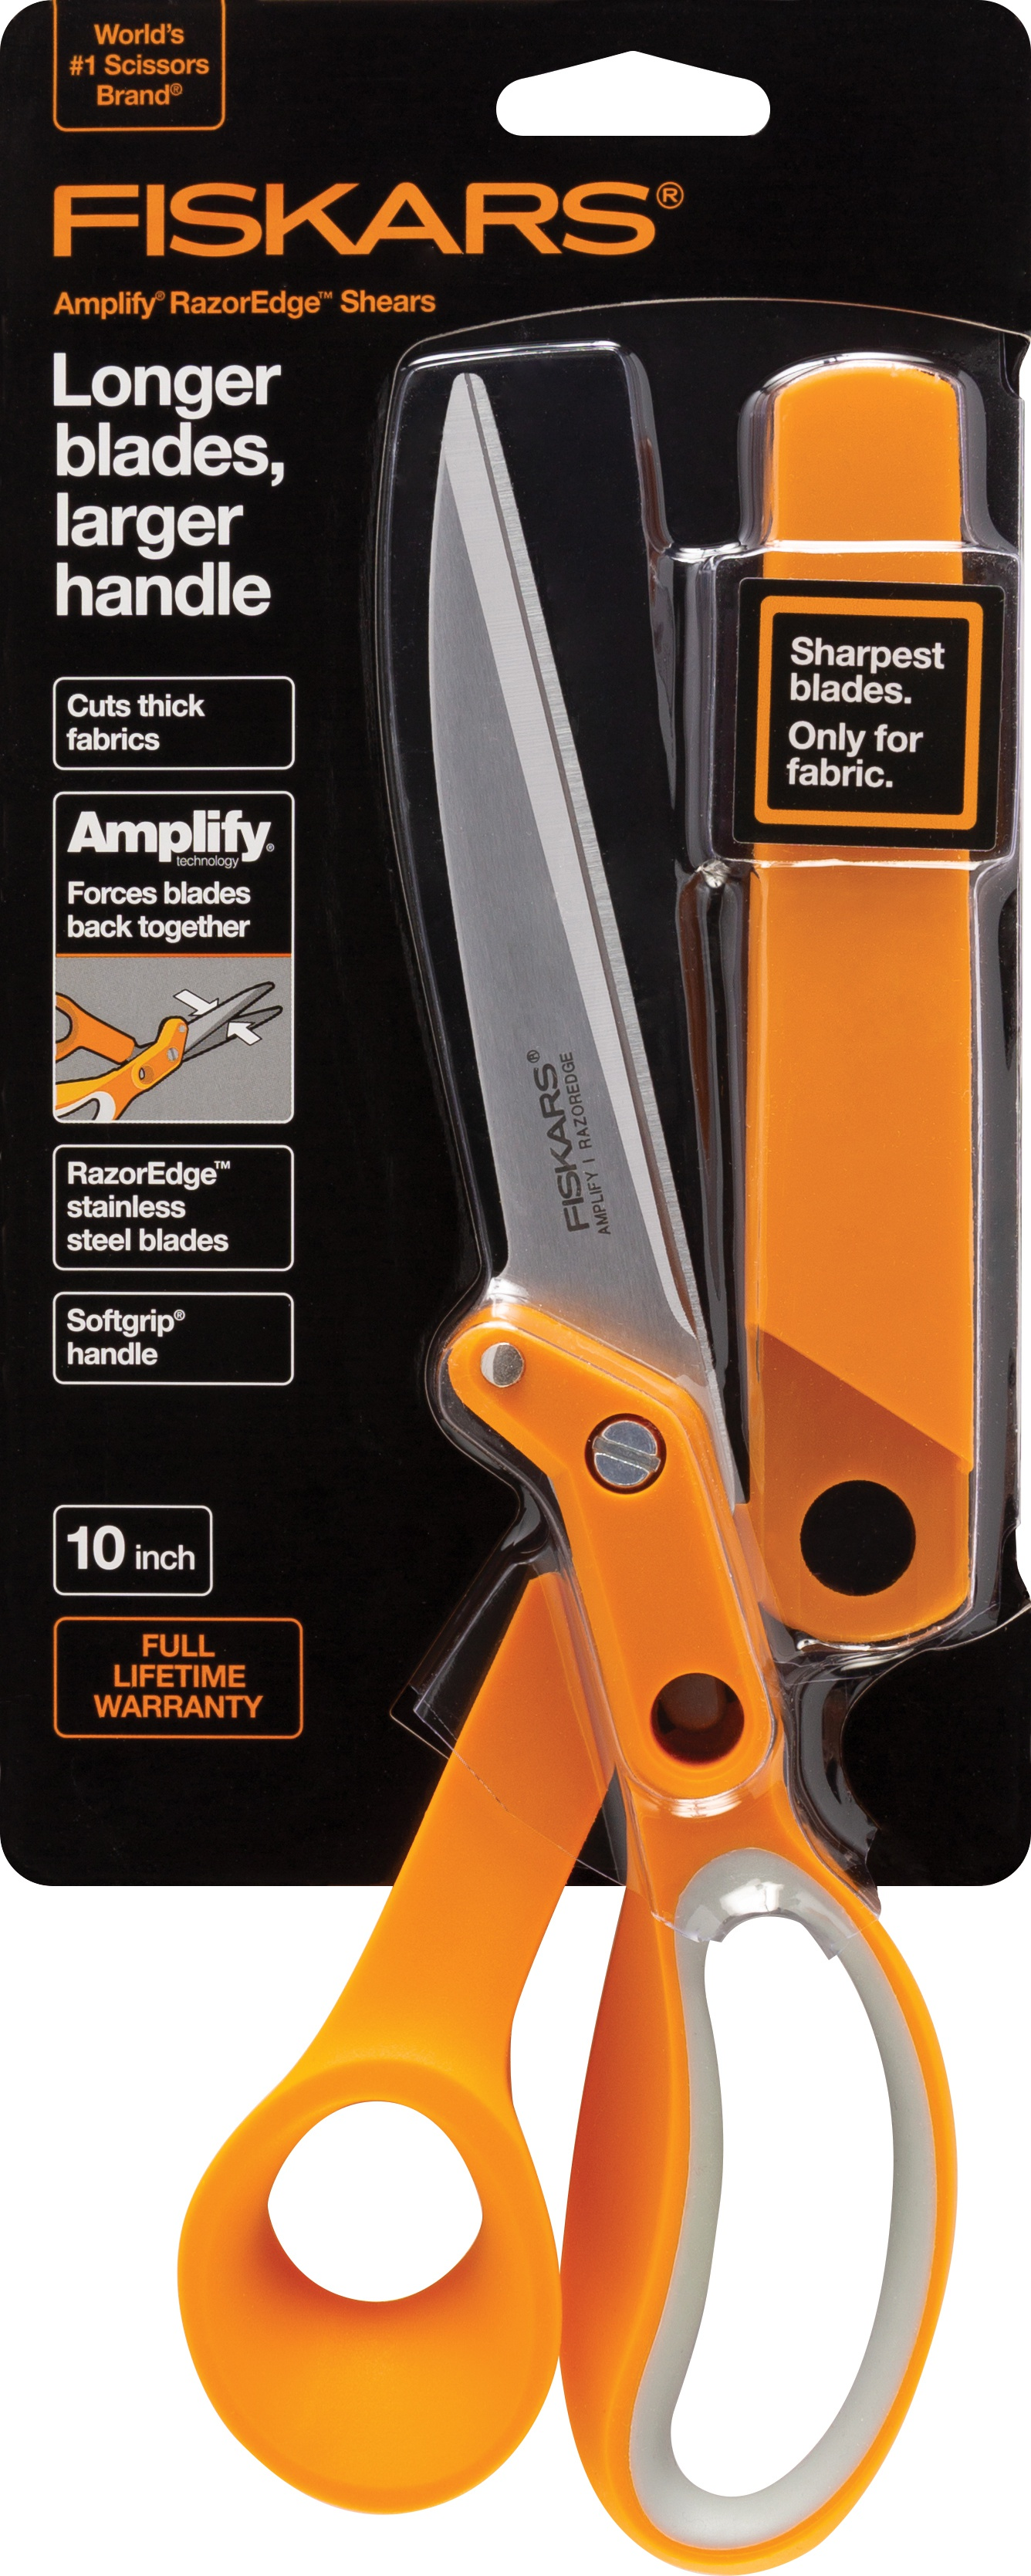 Fiskars Amplify RazorEdge Fabric Scissors 10-